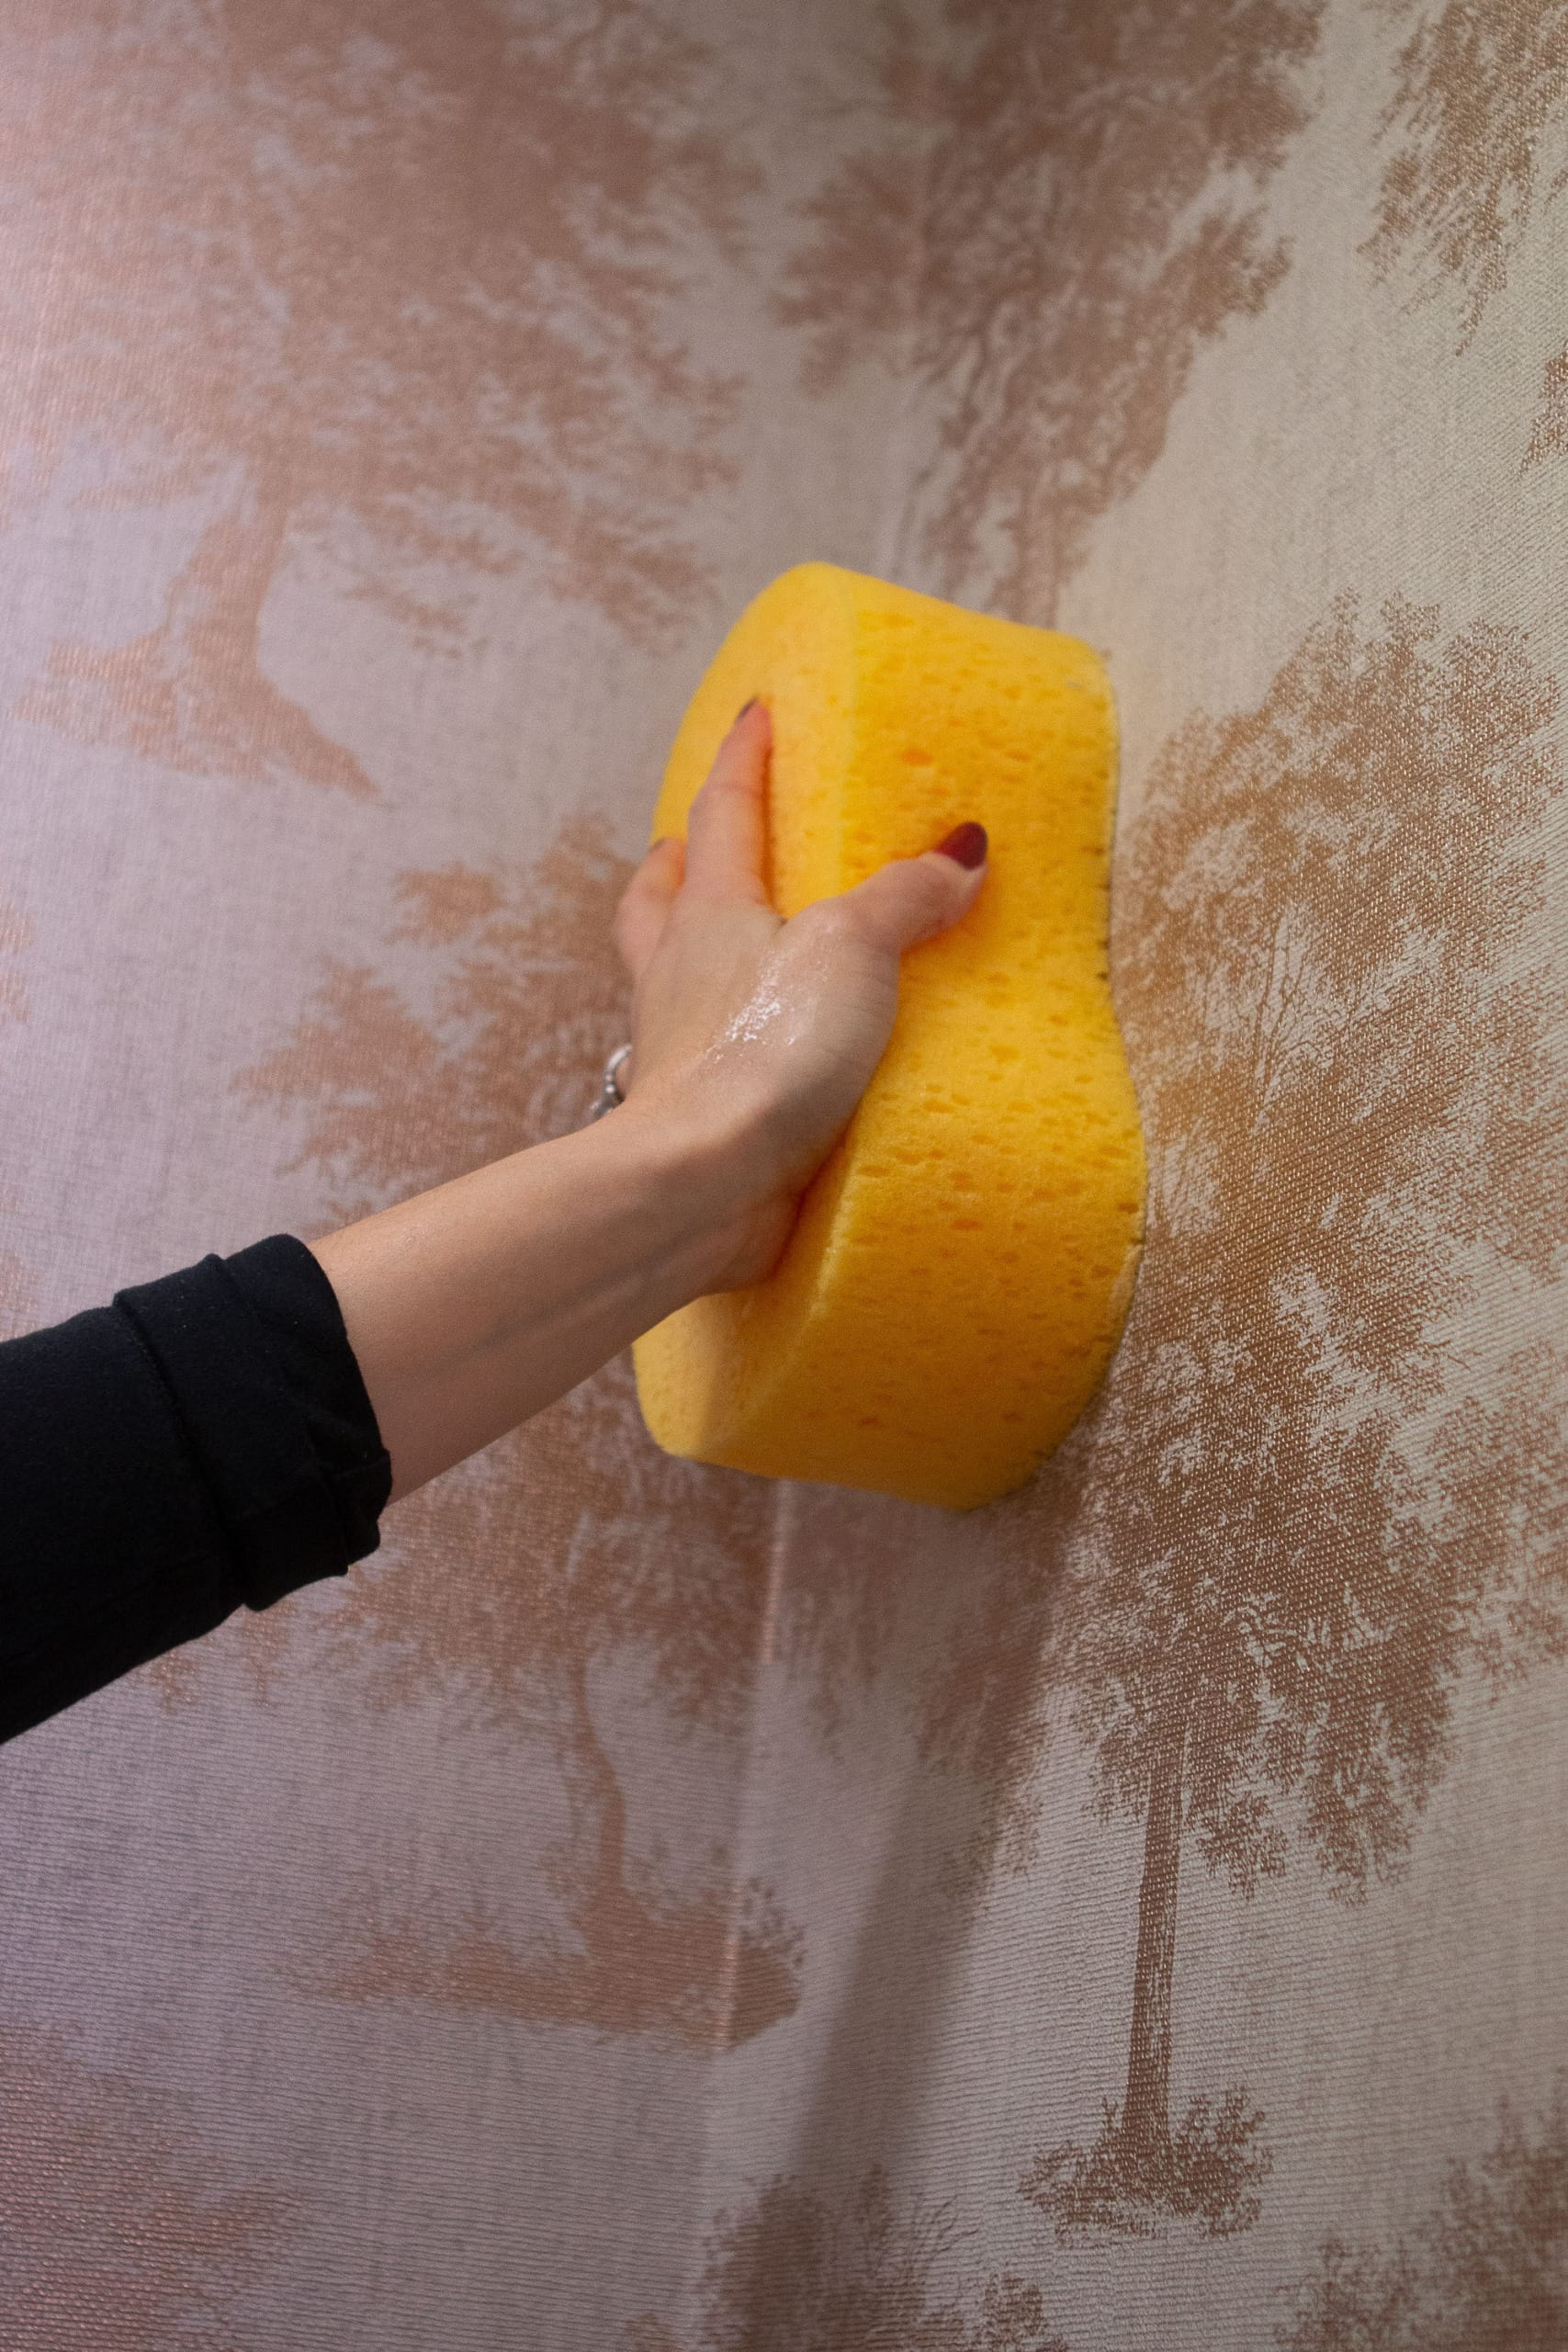 Use a sponge to get rid of excess paste